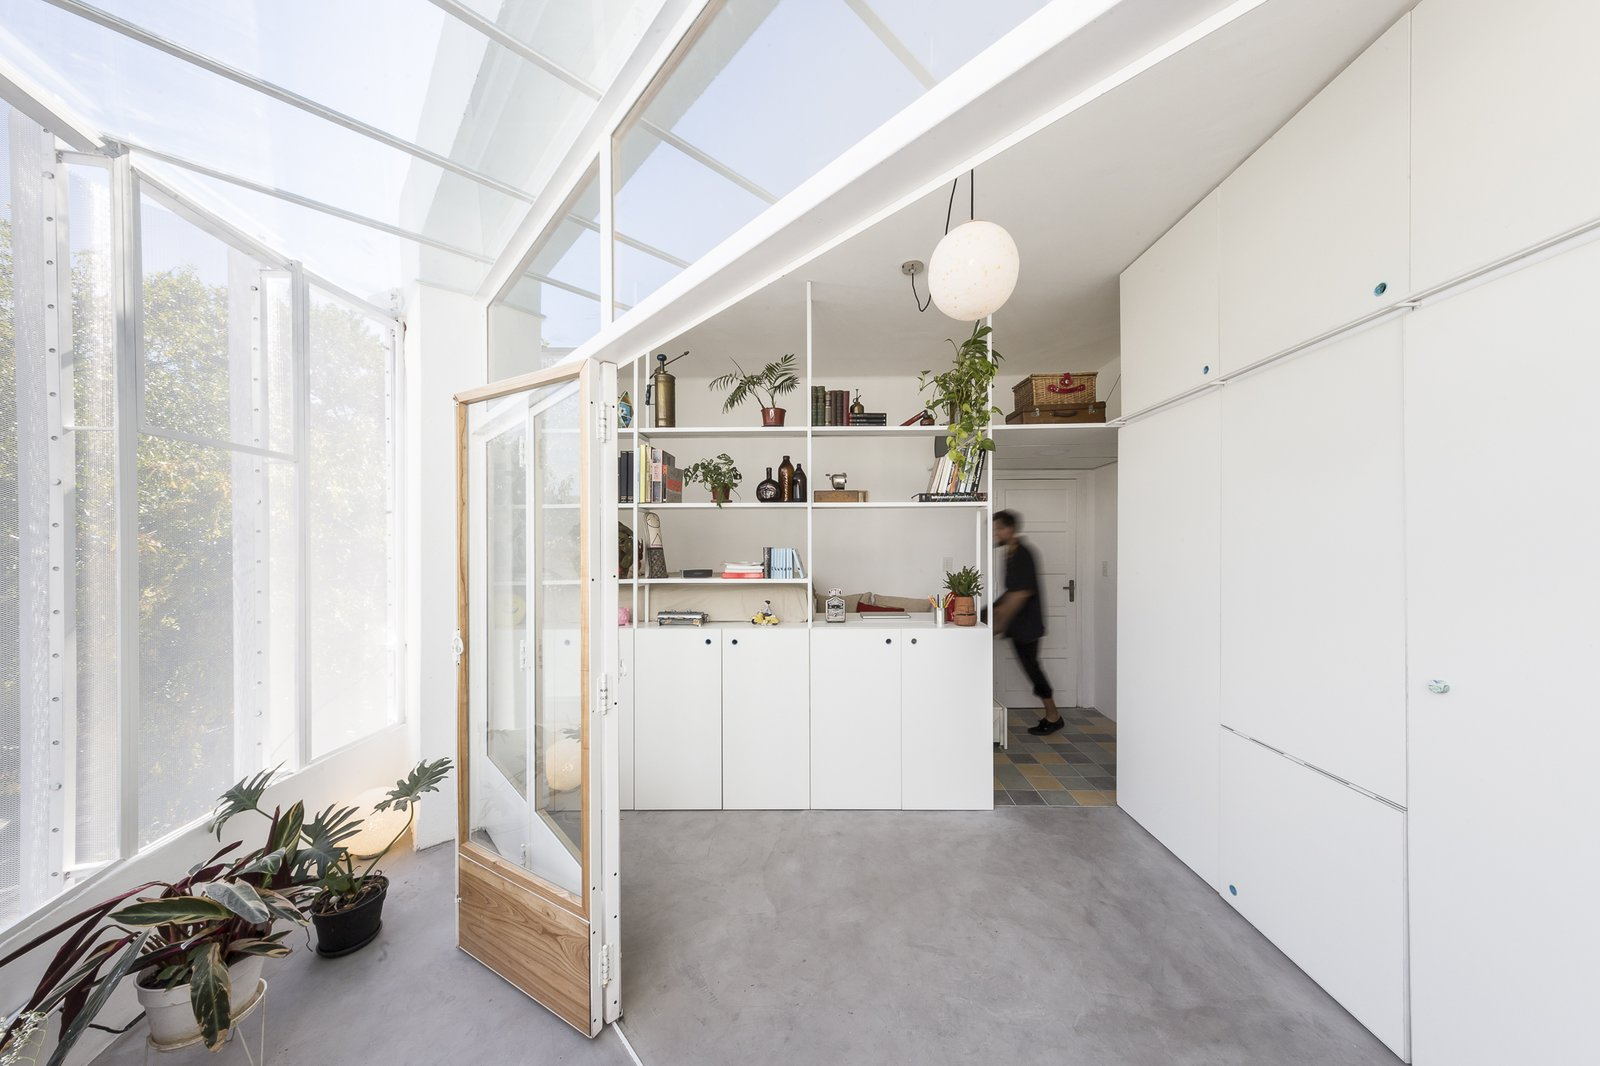 Living, Bookcase, Pendant, Concrete, Shelves, and Storage The space between the sleeping nook and balcony functions as a flexible living area.  Living Storage Pendant Concrete Photos from A Perforated Balcony Brings Ample Light Into a Tiny Abode